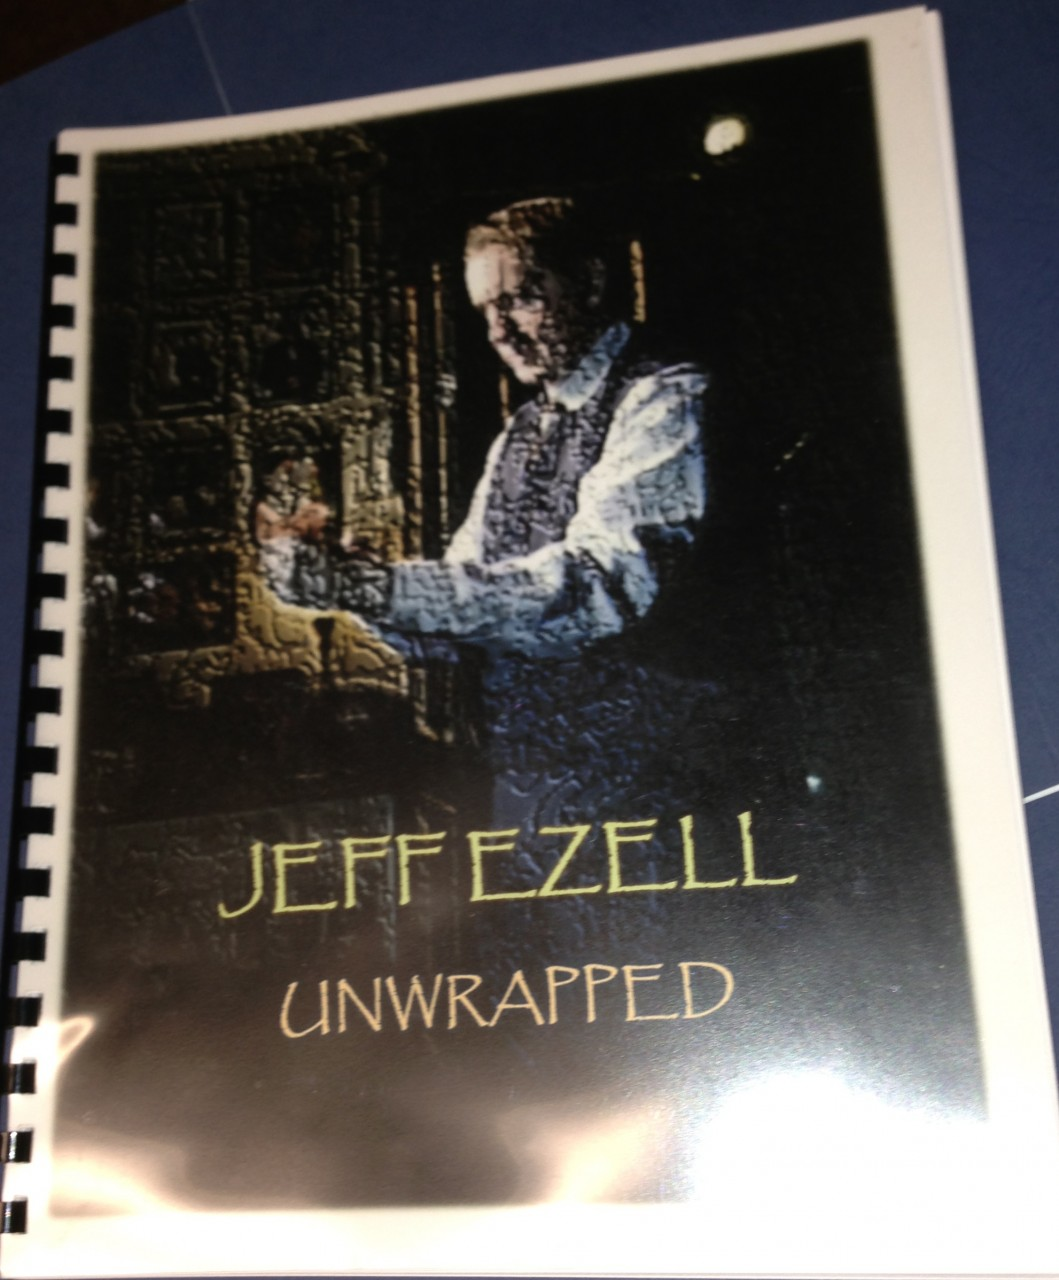 Unwrapped by, Jeff Ezell